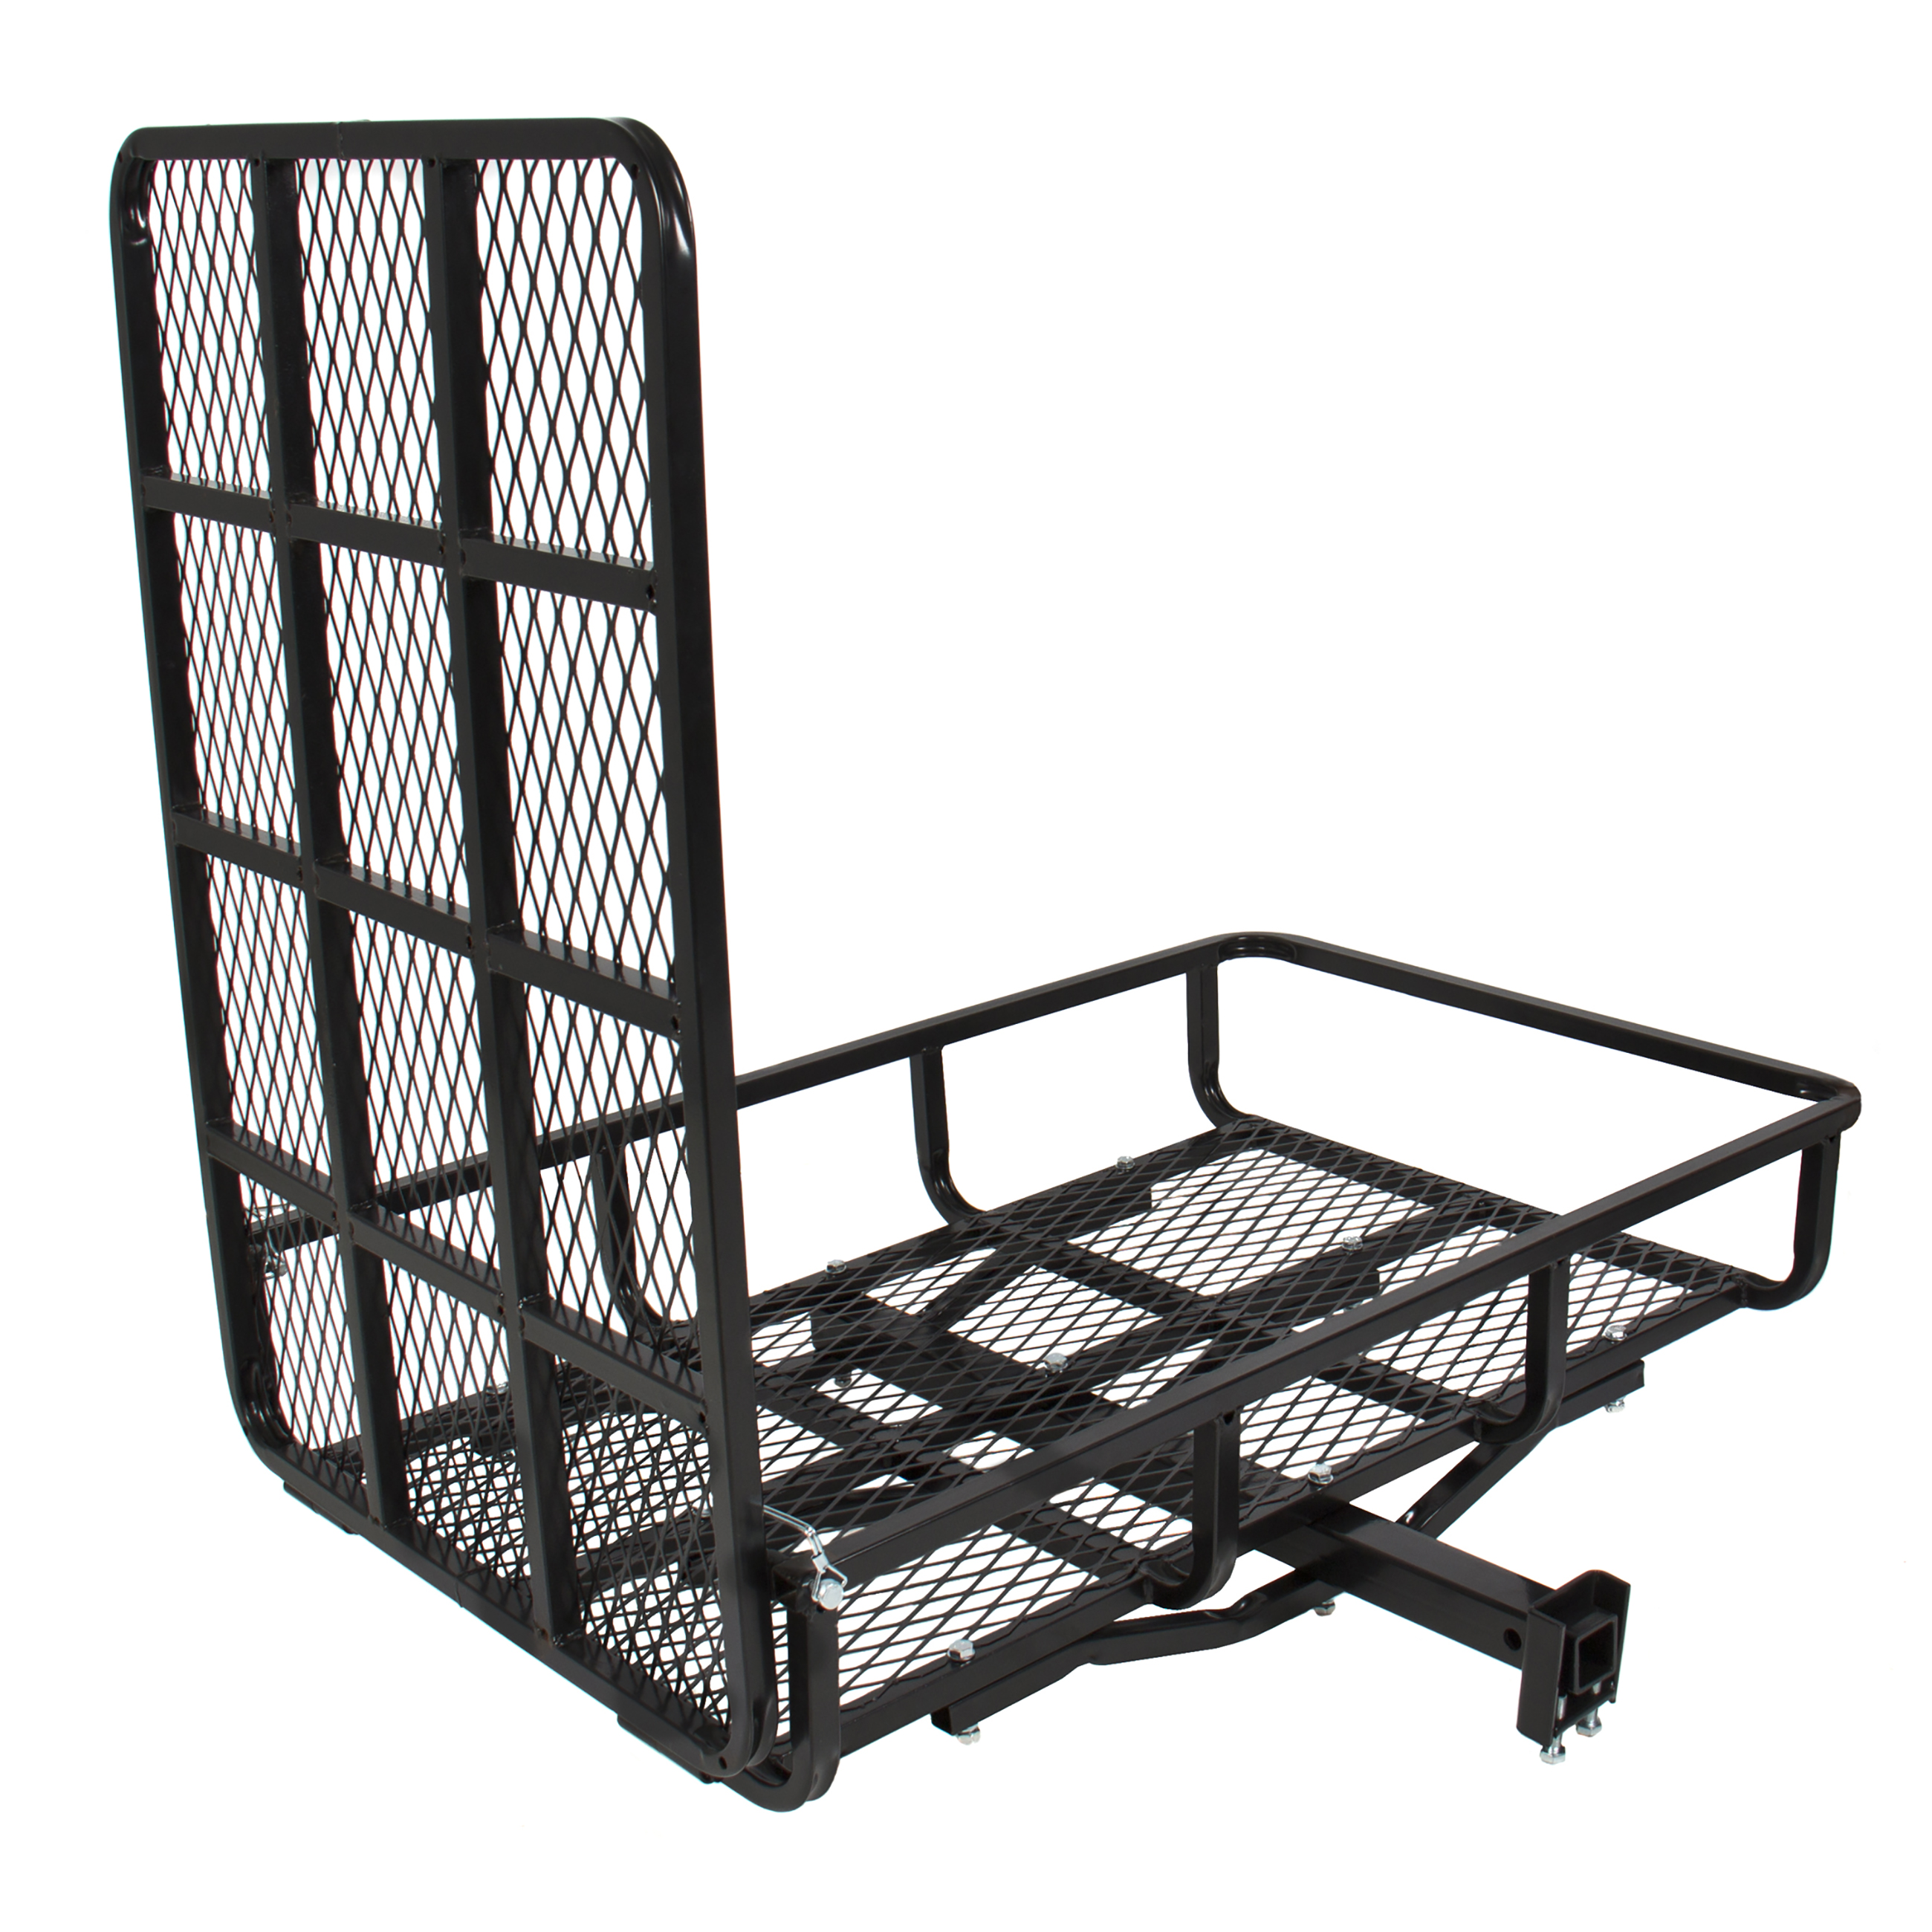 Outstanding Best Choice Products Hitch Mount Carrier W Mobility Ramp For Wheelchair Scooter 500Lb Capacity Walmart Com Ncnpc Chair Design For Home Ncnpcorg